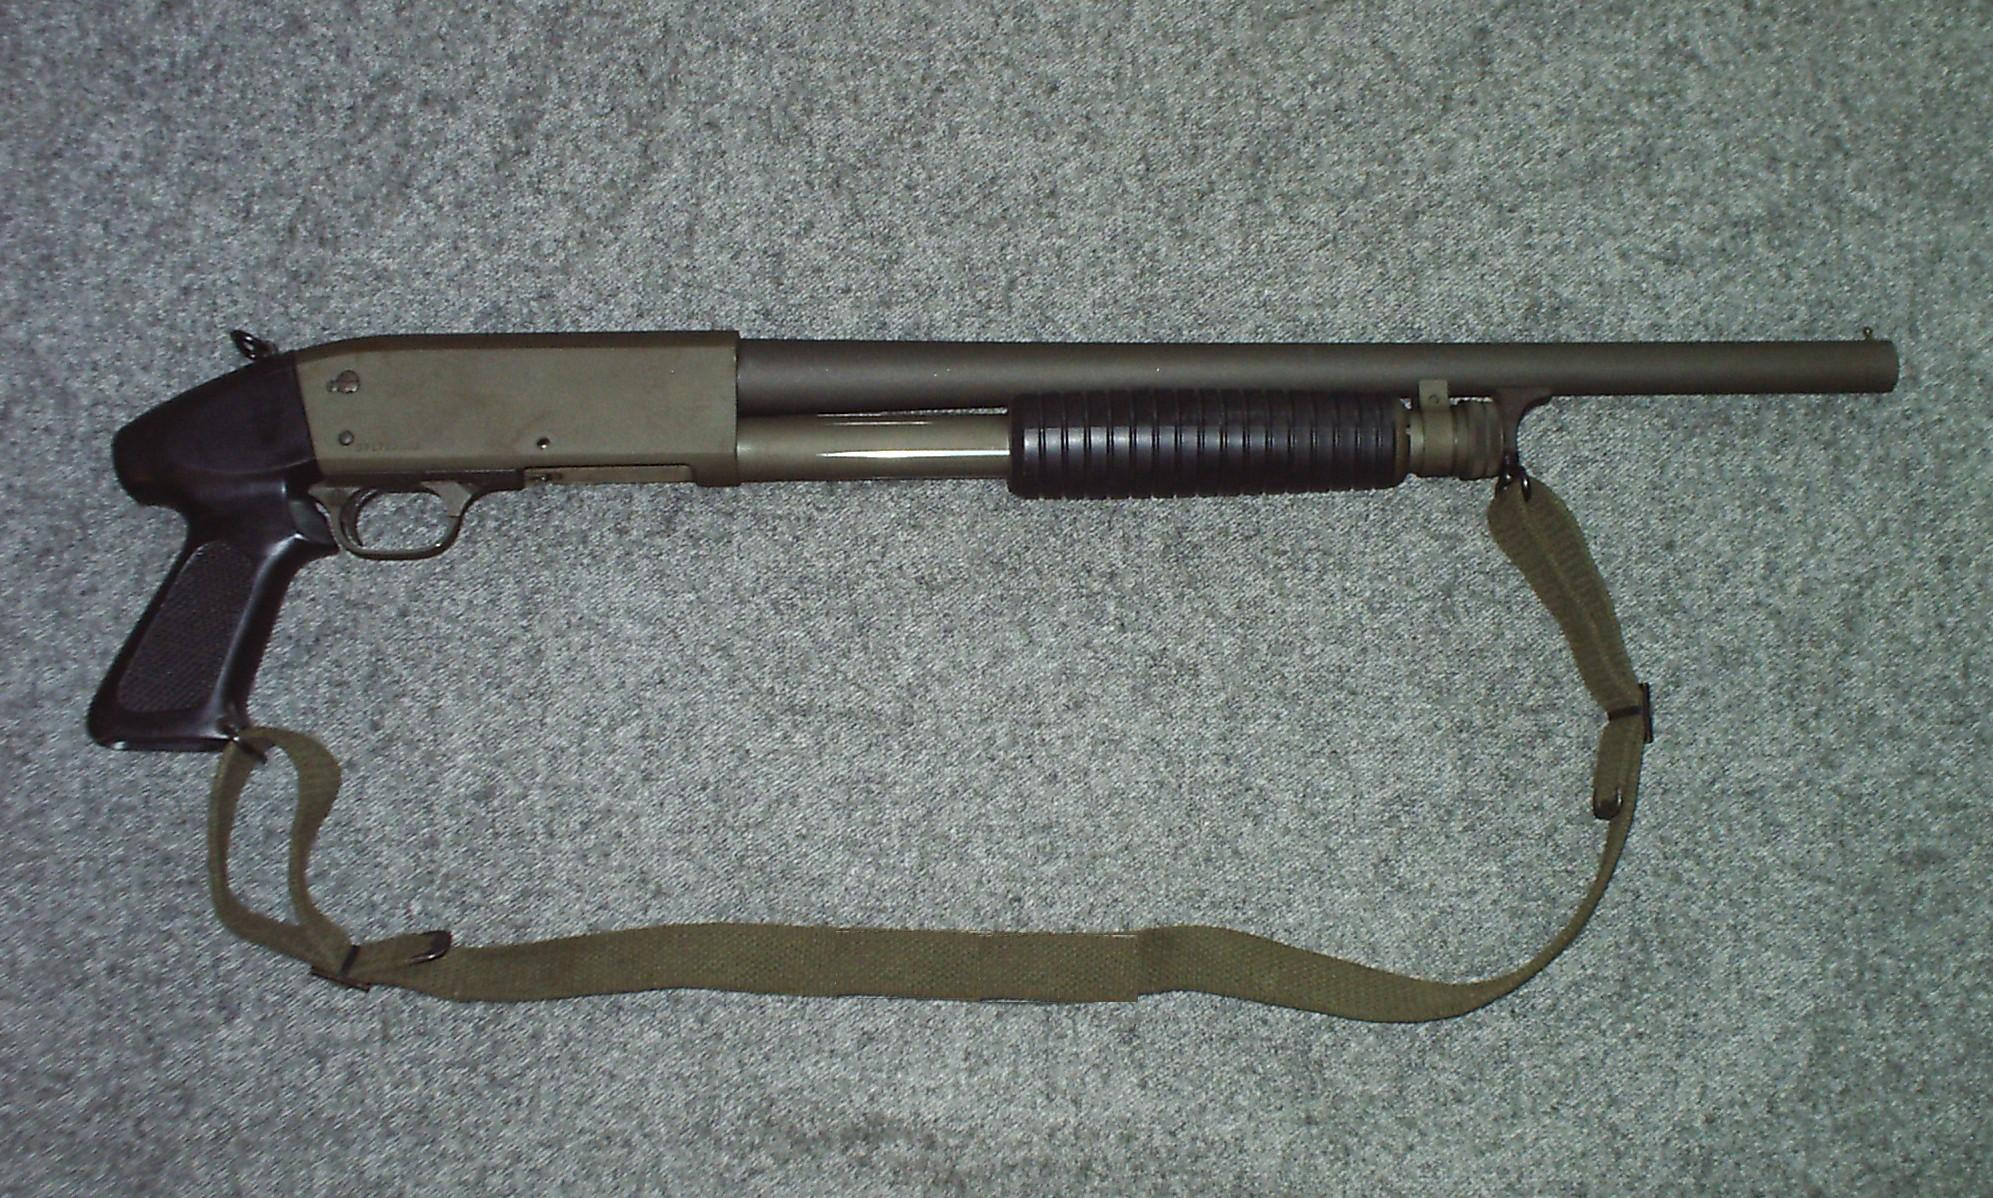 Ithaca 37 Military Wiki Fandom Powered By Wikia Marlin Model 1894 Parts Diagram Riot Version With A Pistol Grip